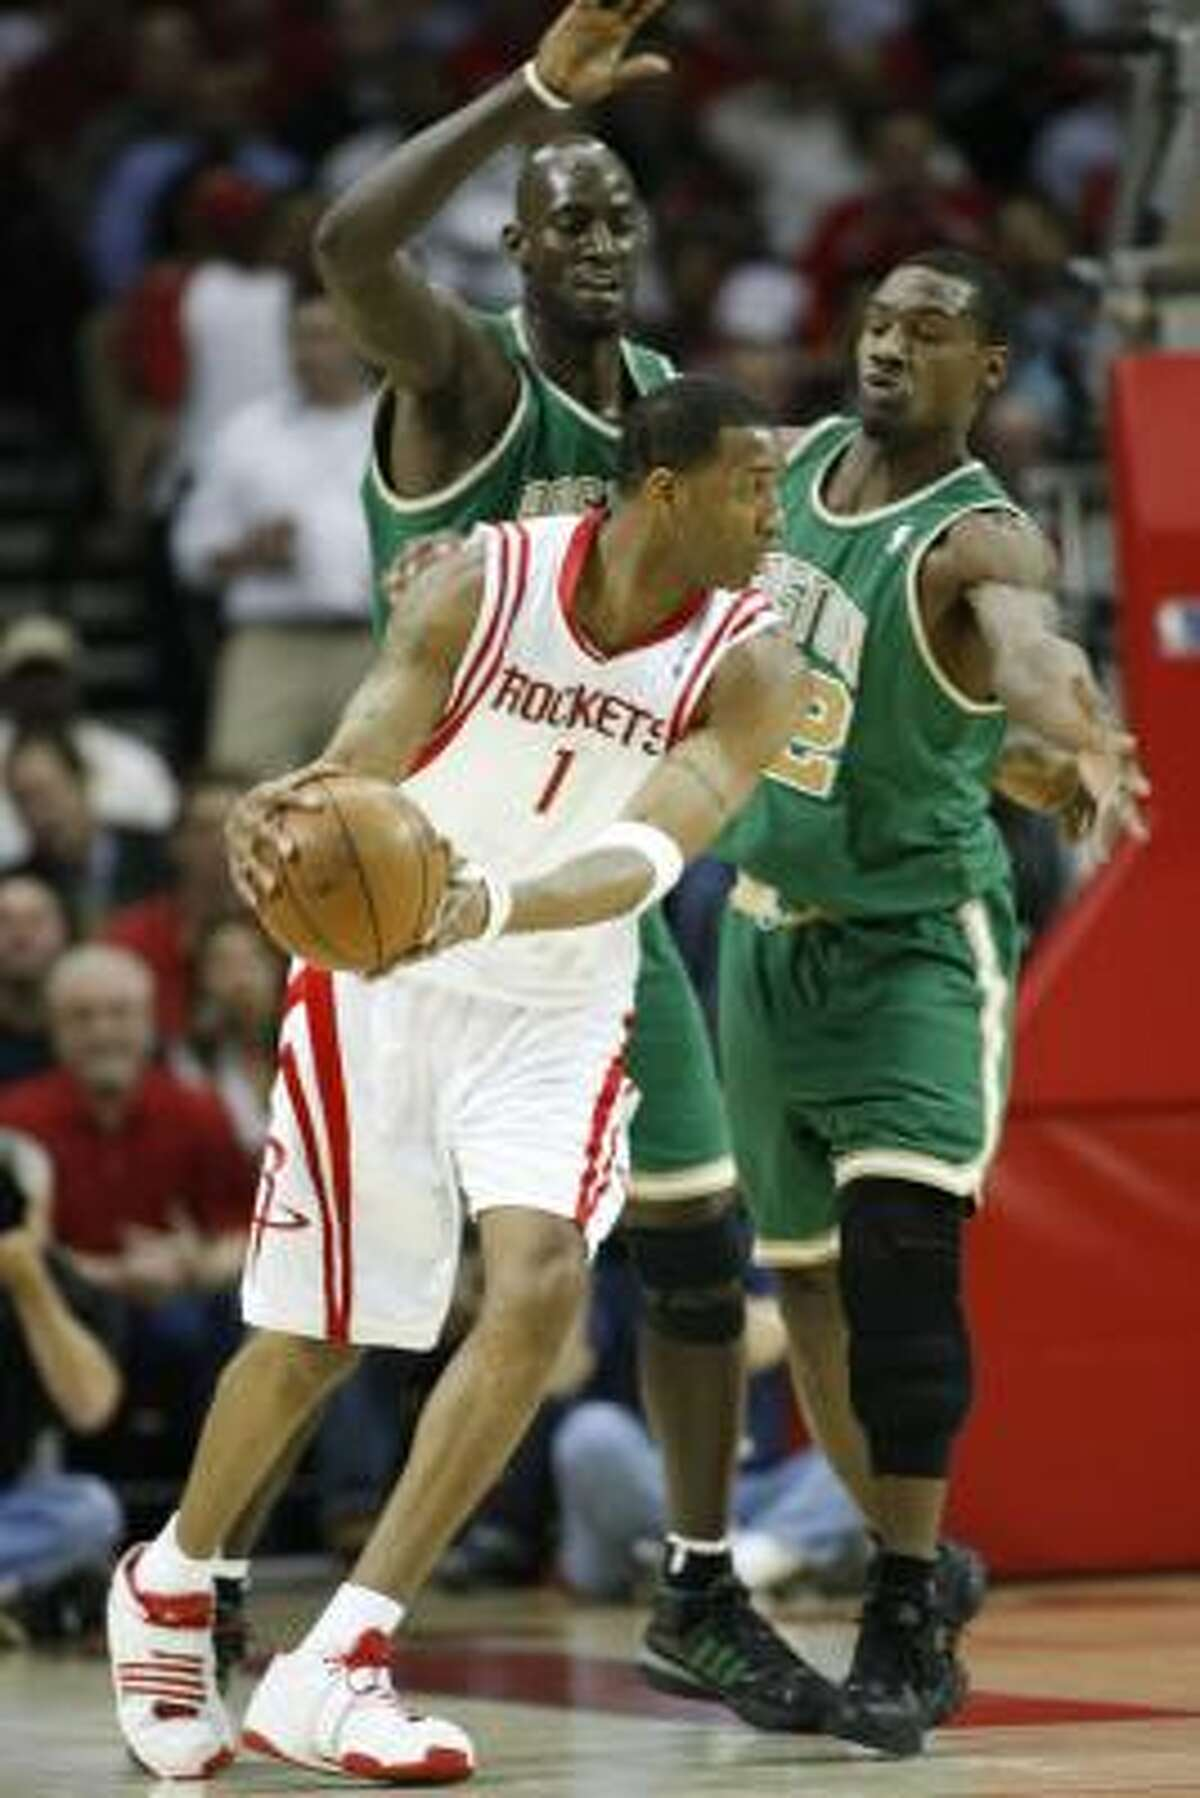 Rockets guard Tracy McGrady looks to pass as Boston's Kevin Garnett (5) and Tony Allen defend